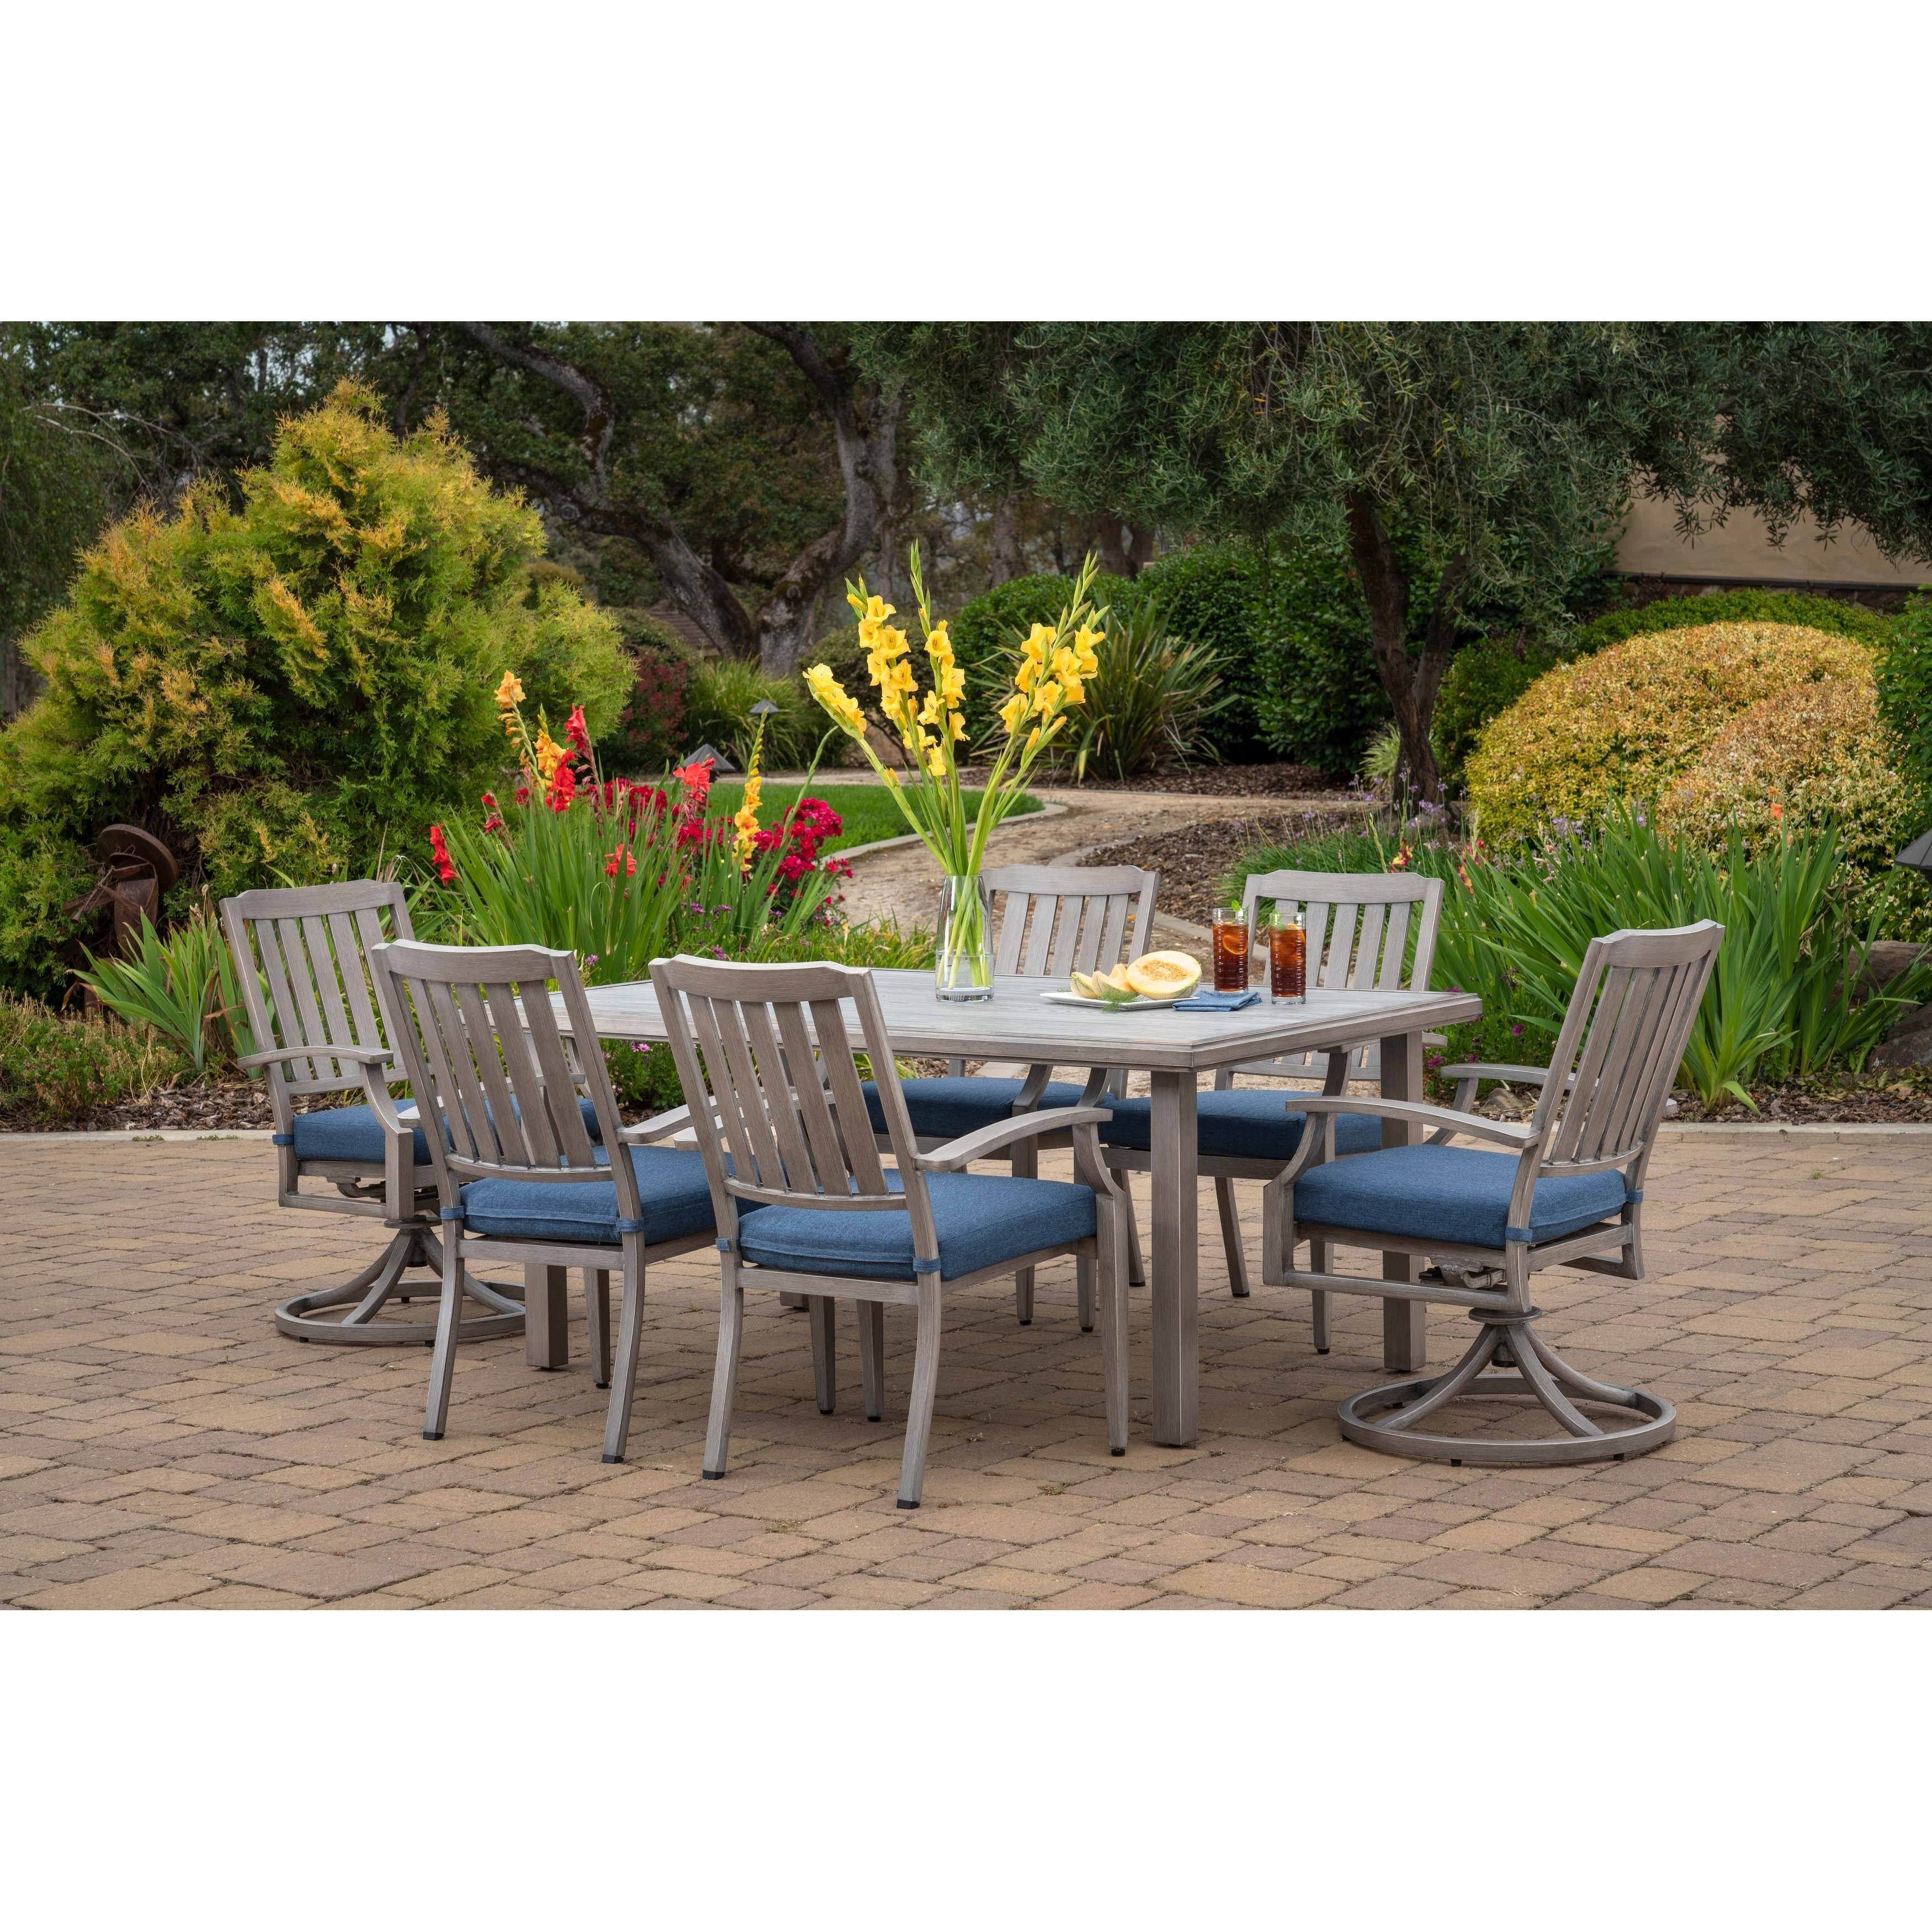 Genial Shop Foremost Casual Tanglewood 7 Piece Dining Set   Aged Mocha   Free  Shipping Today   Overstock   22885926